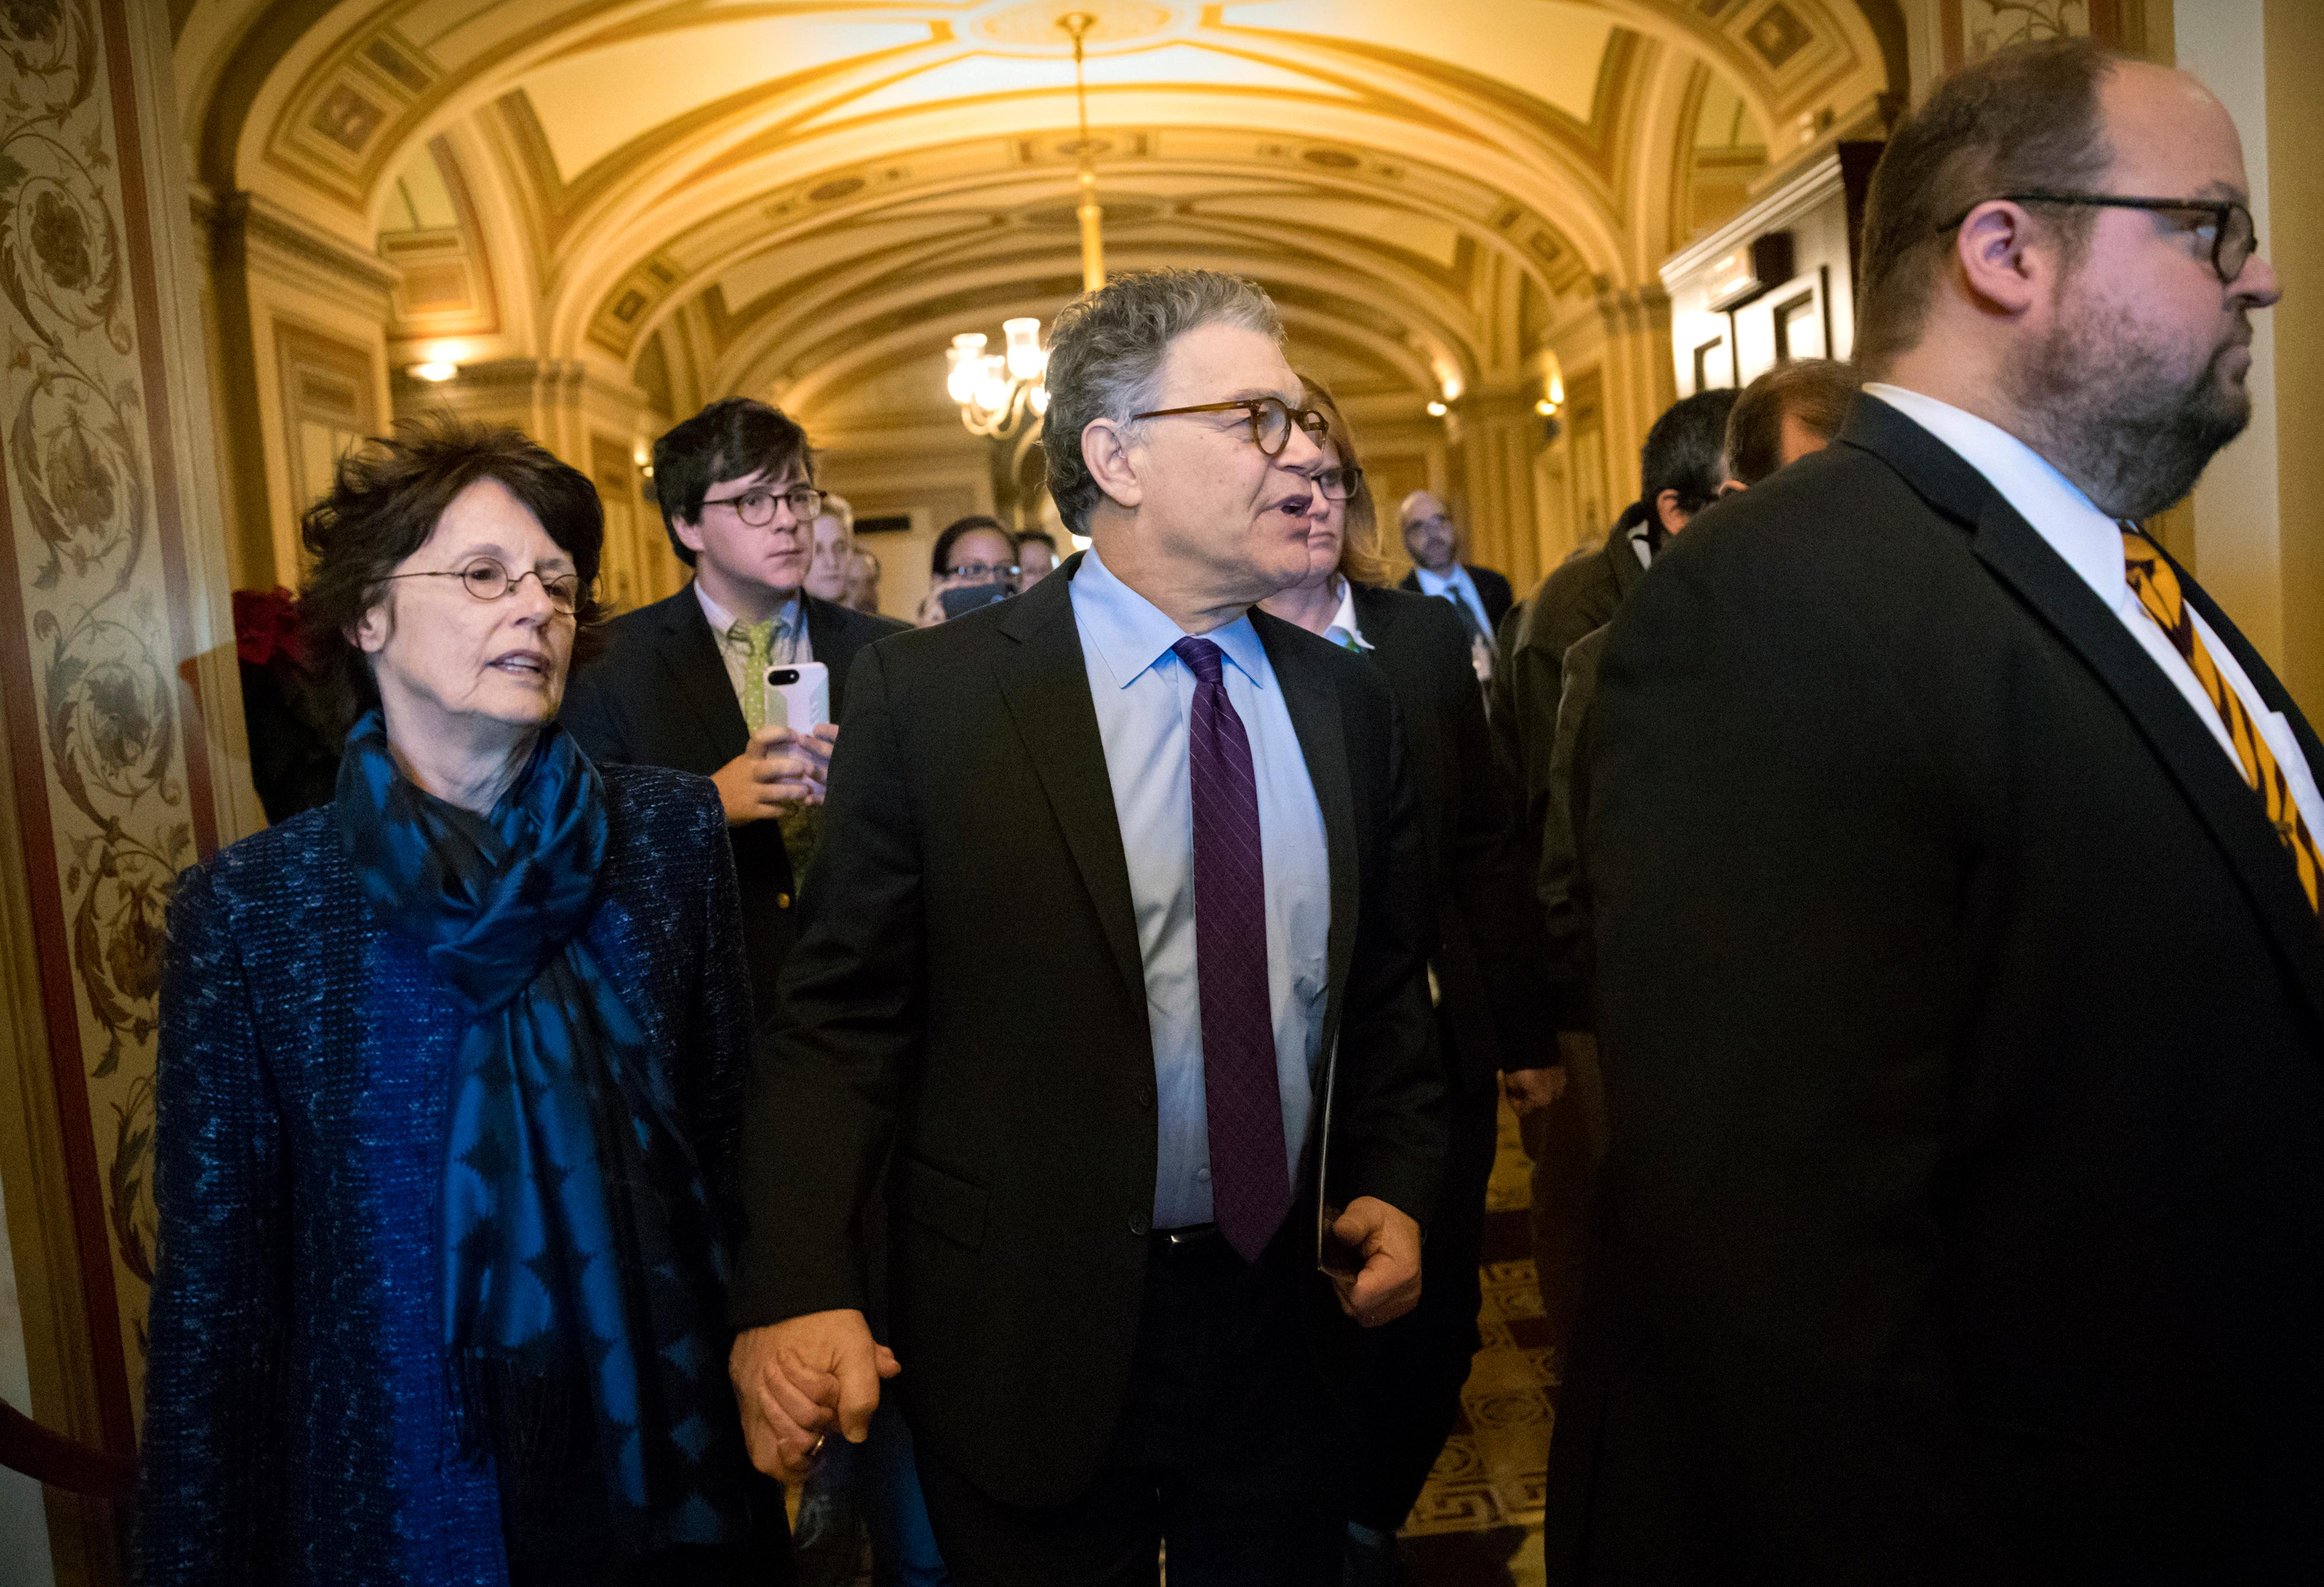 Sen. Al Franken, D-Minn., his wife Franni, arrive at the Senate to make a statement on charges of sexual misconduct, on Capitol Hill in Washington, Thursday, Dec. 7, 2017. (AP Photo/J. Scott Applewhite)